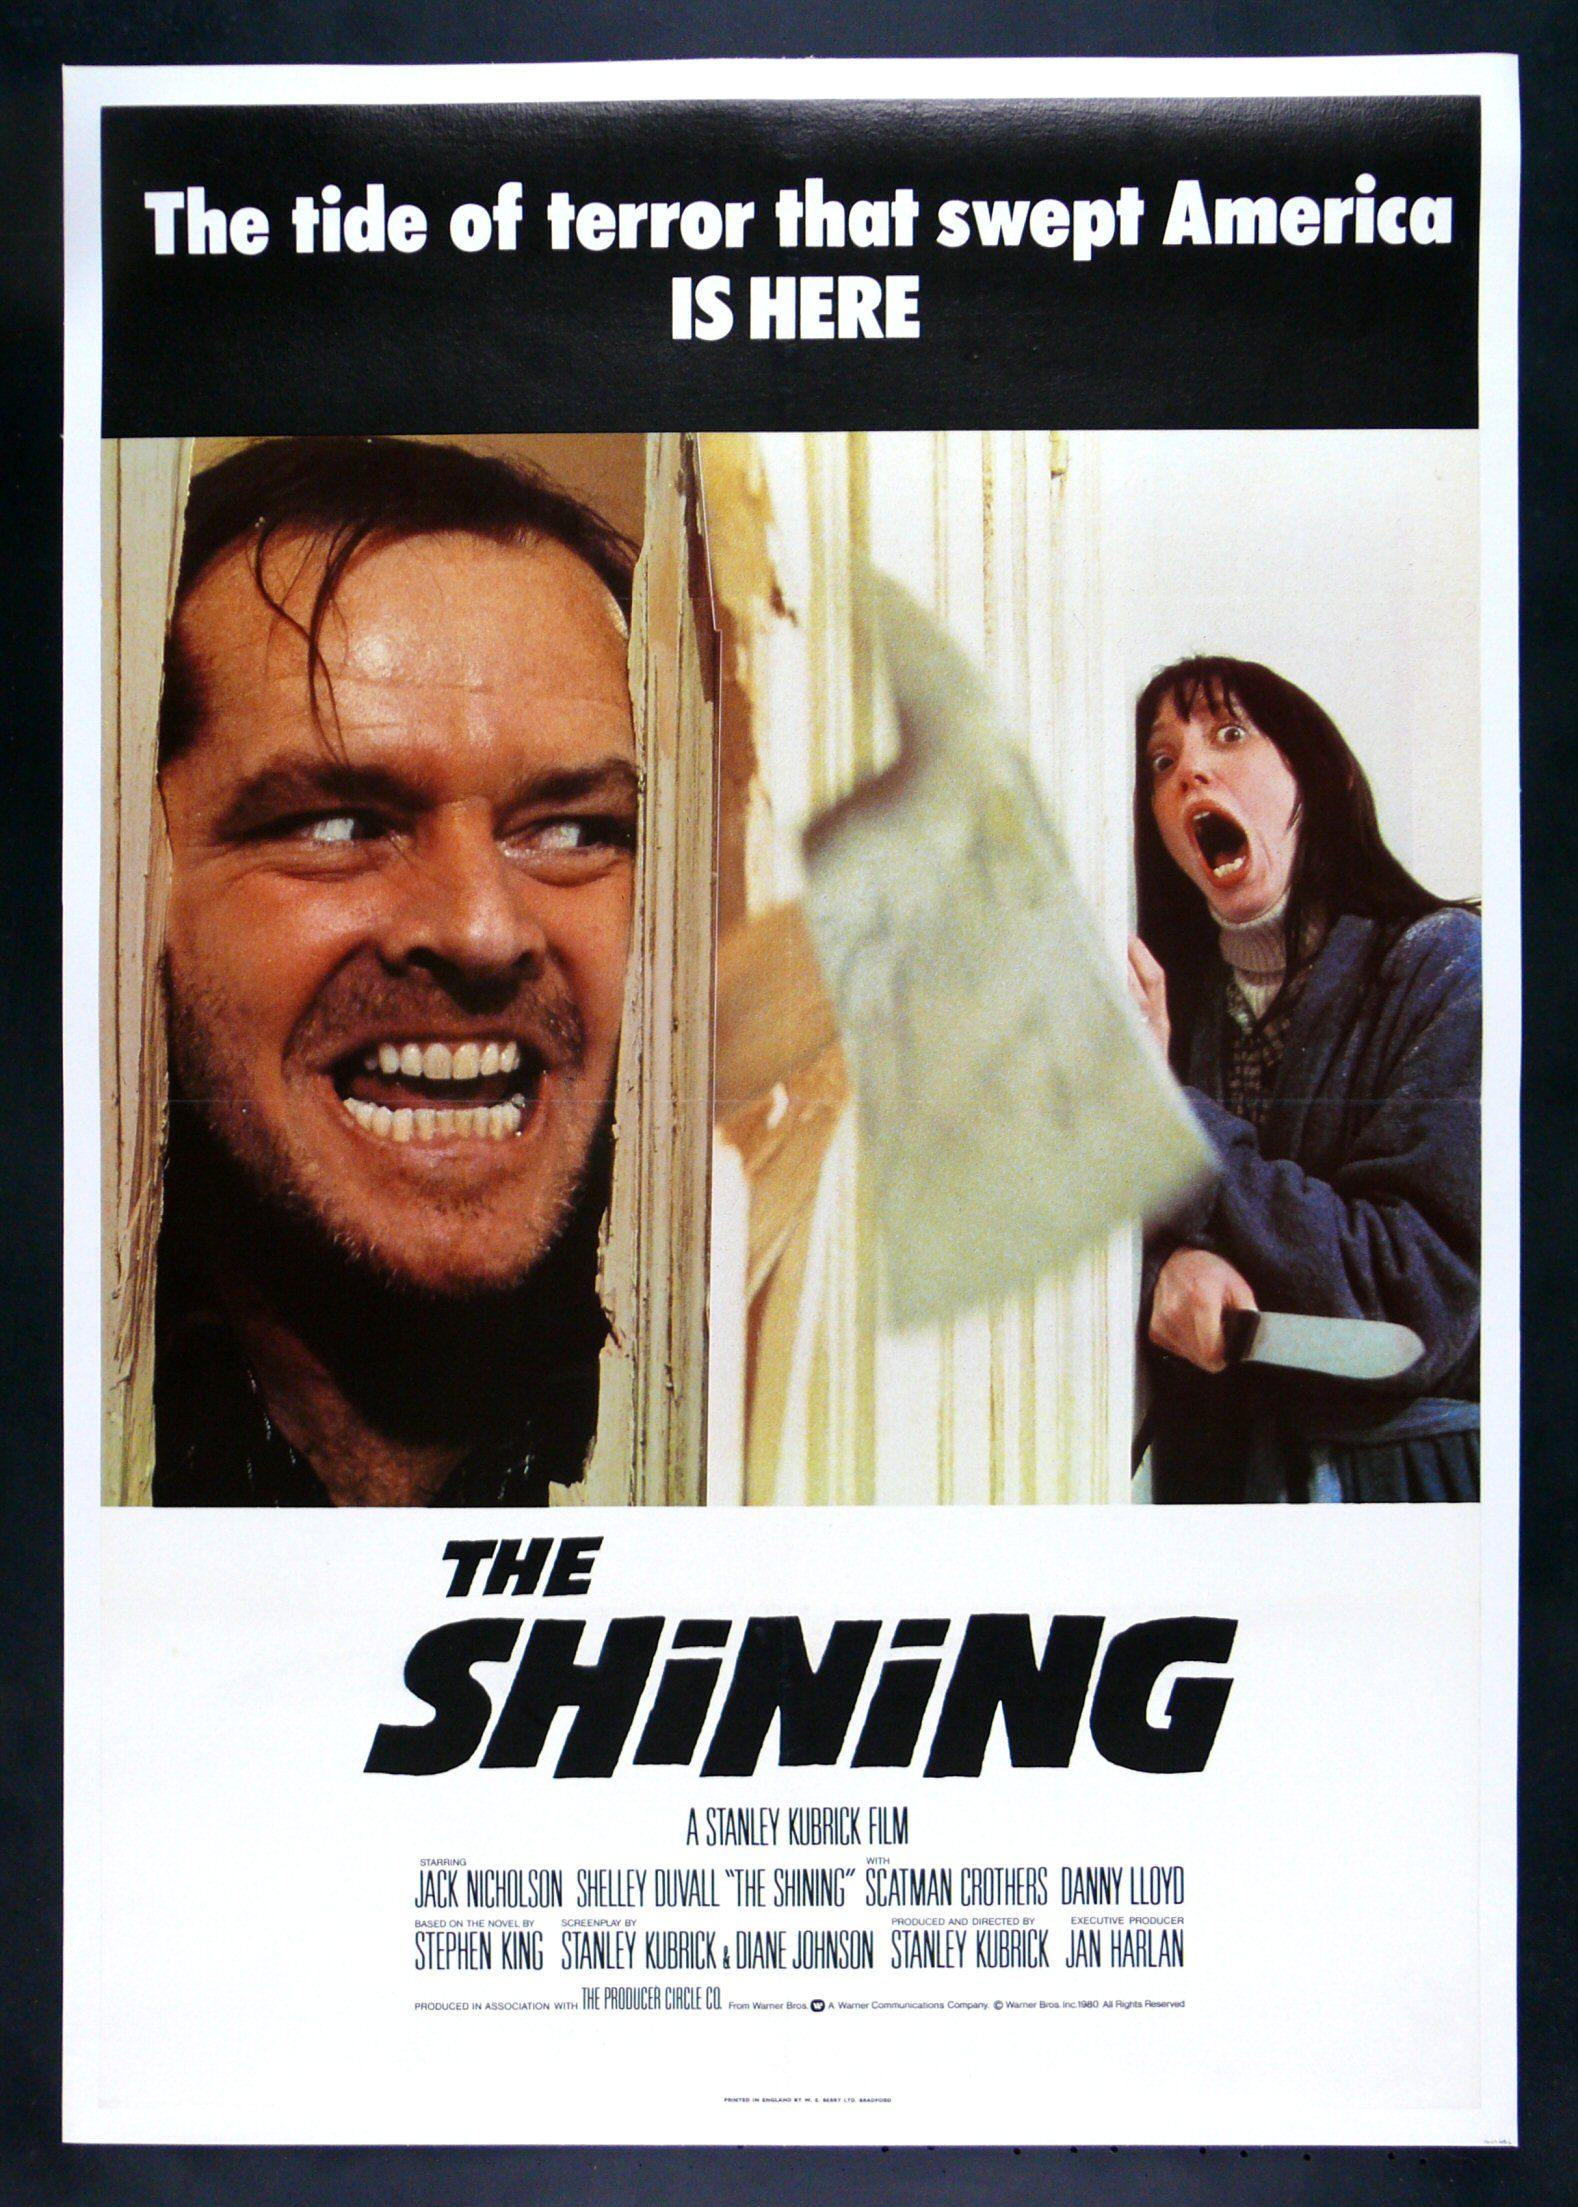 The film is based on Stephen King's 1977 novel of the same